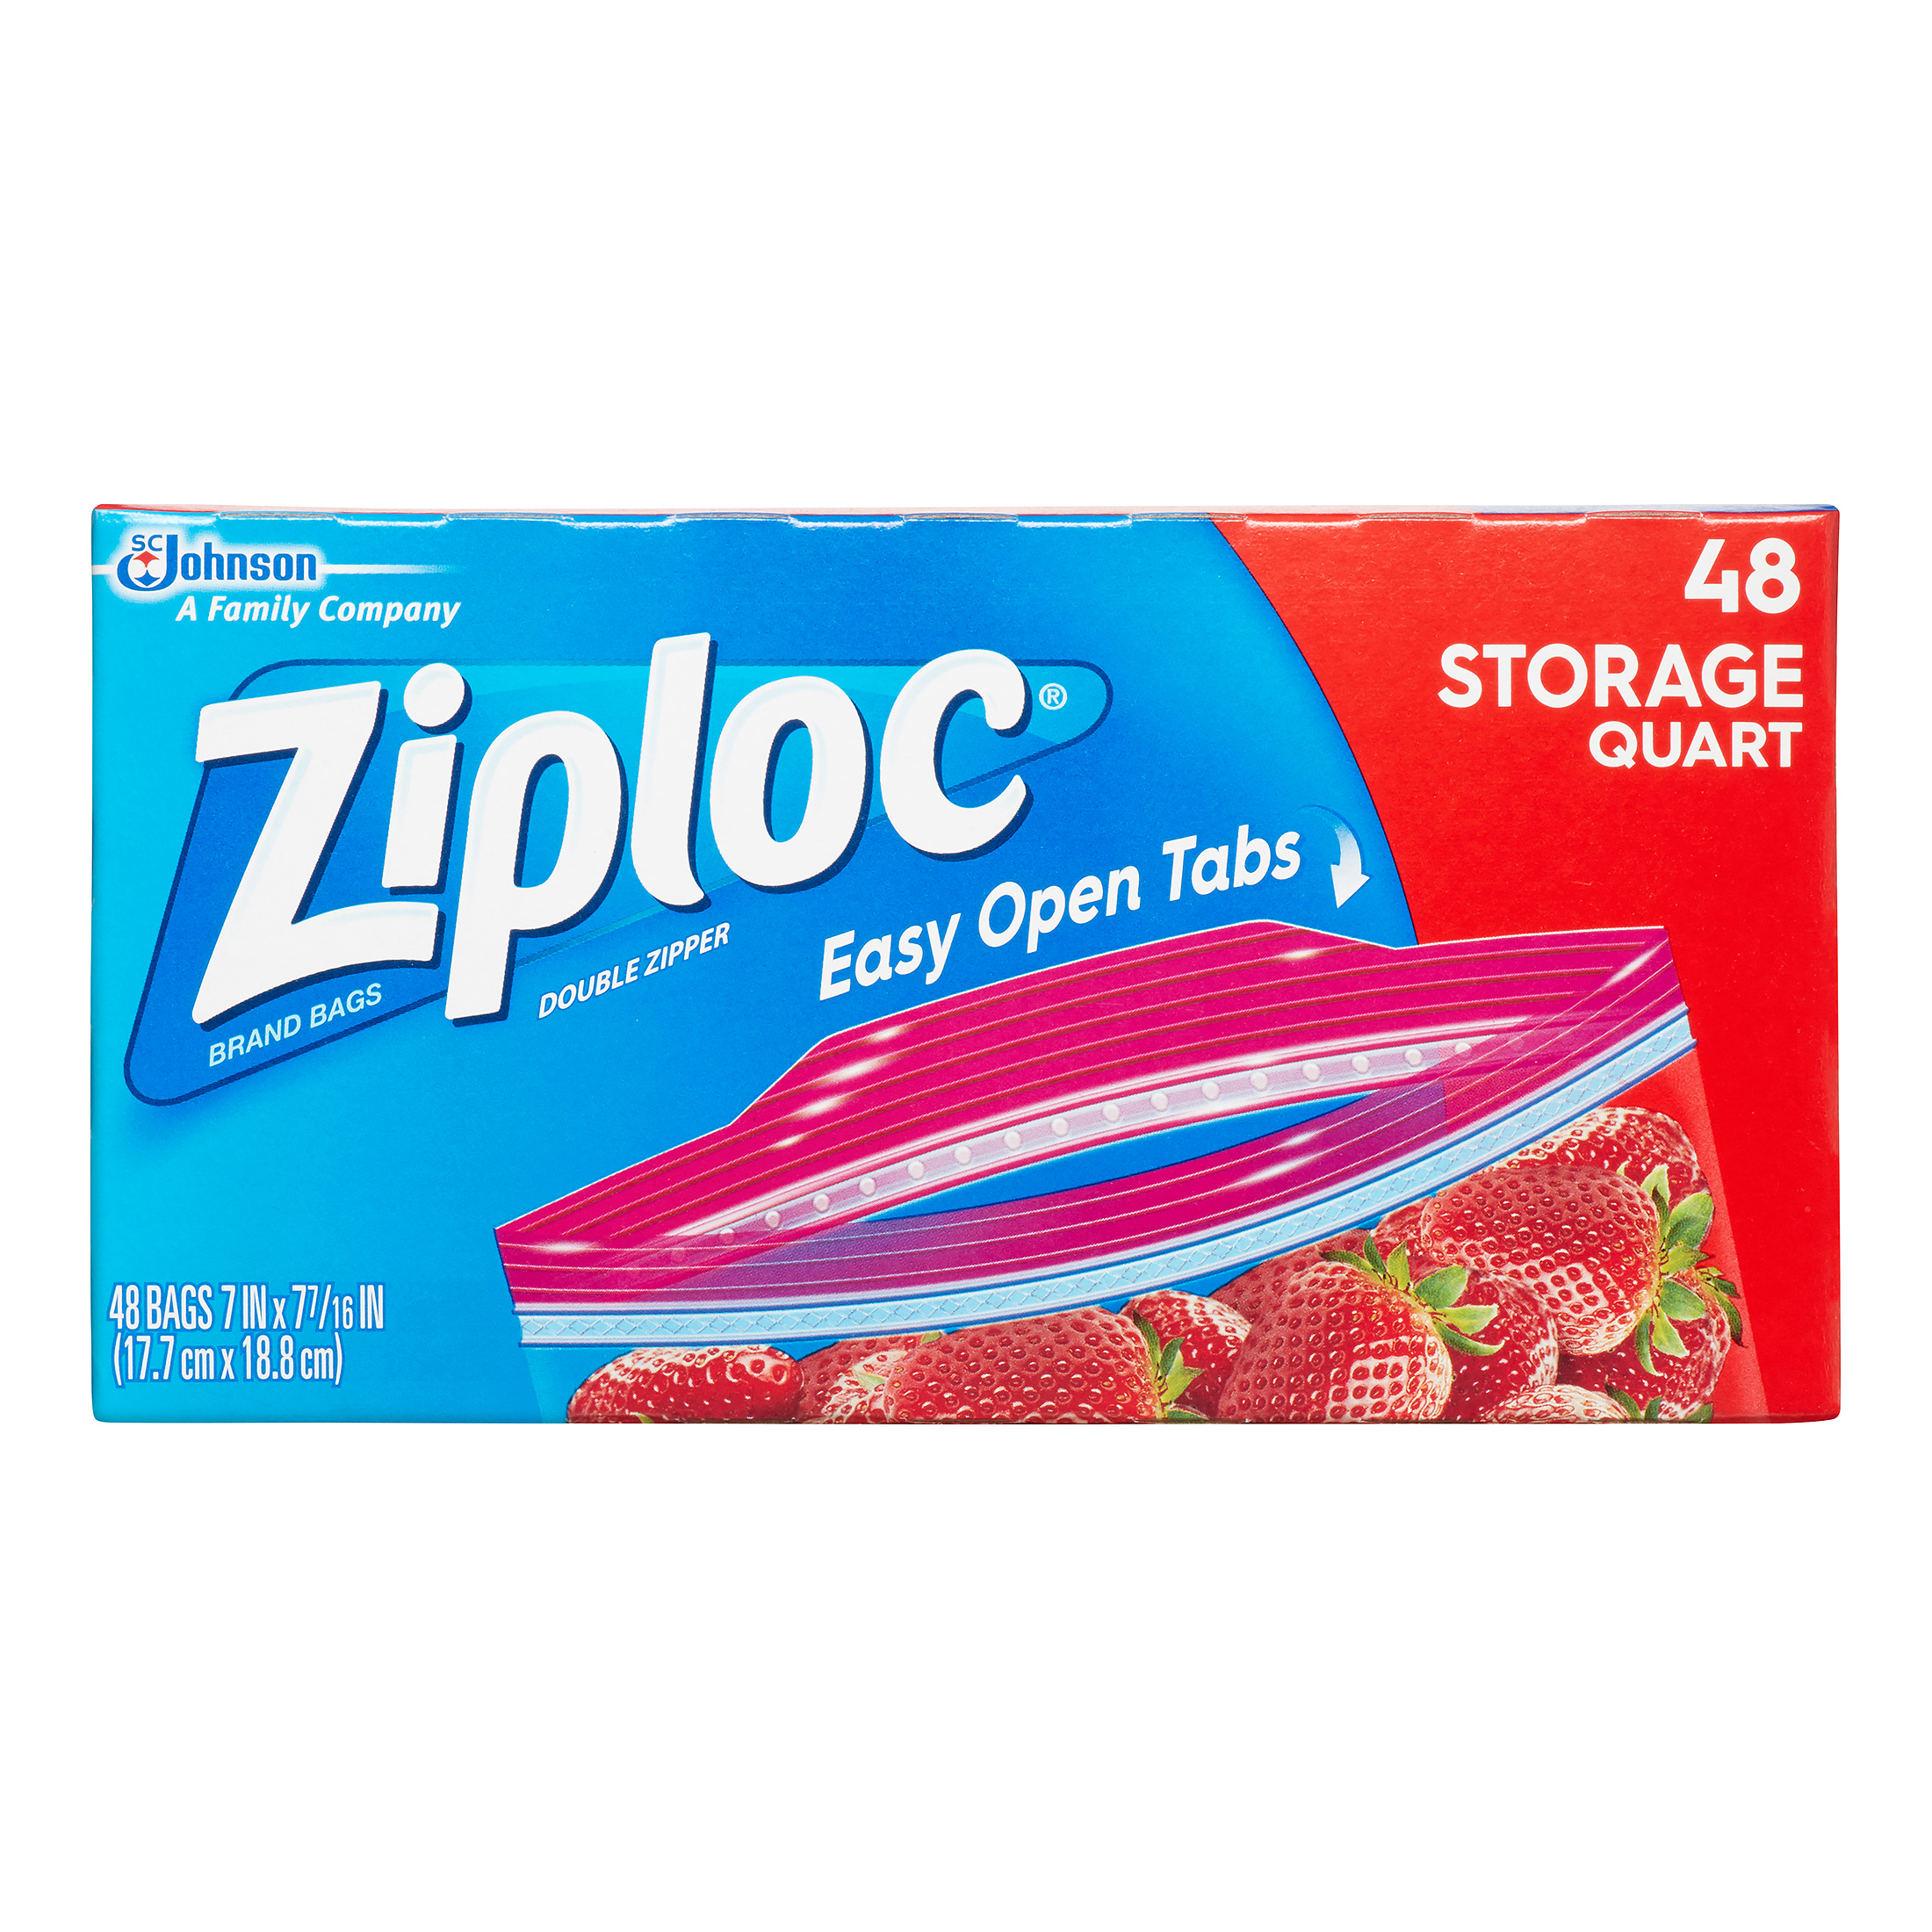 Ziploc Double Zipper Storage Bags, Quart, 48 Ct